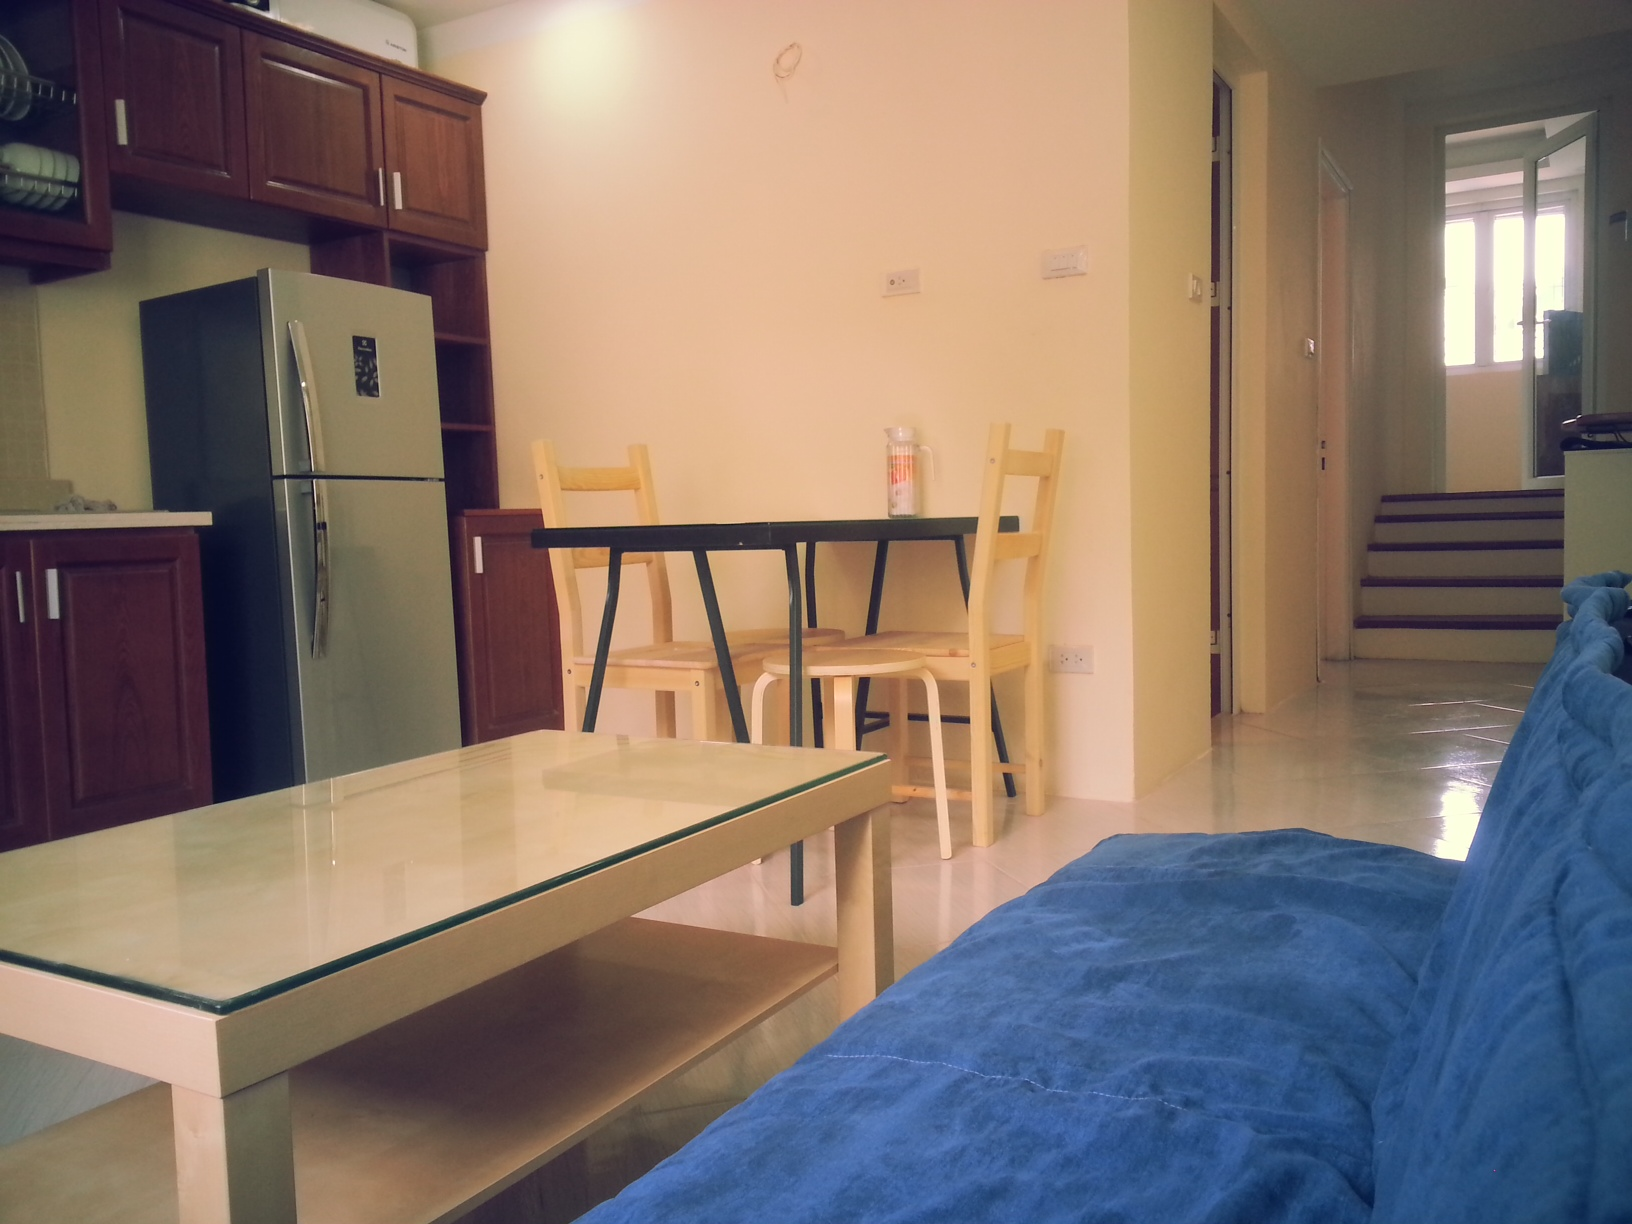 Hanoi villas houses apartments serviced apartments for rent for Affordable furniture for apartments